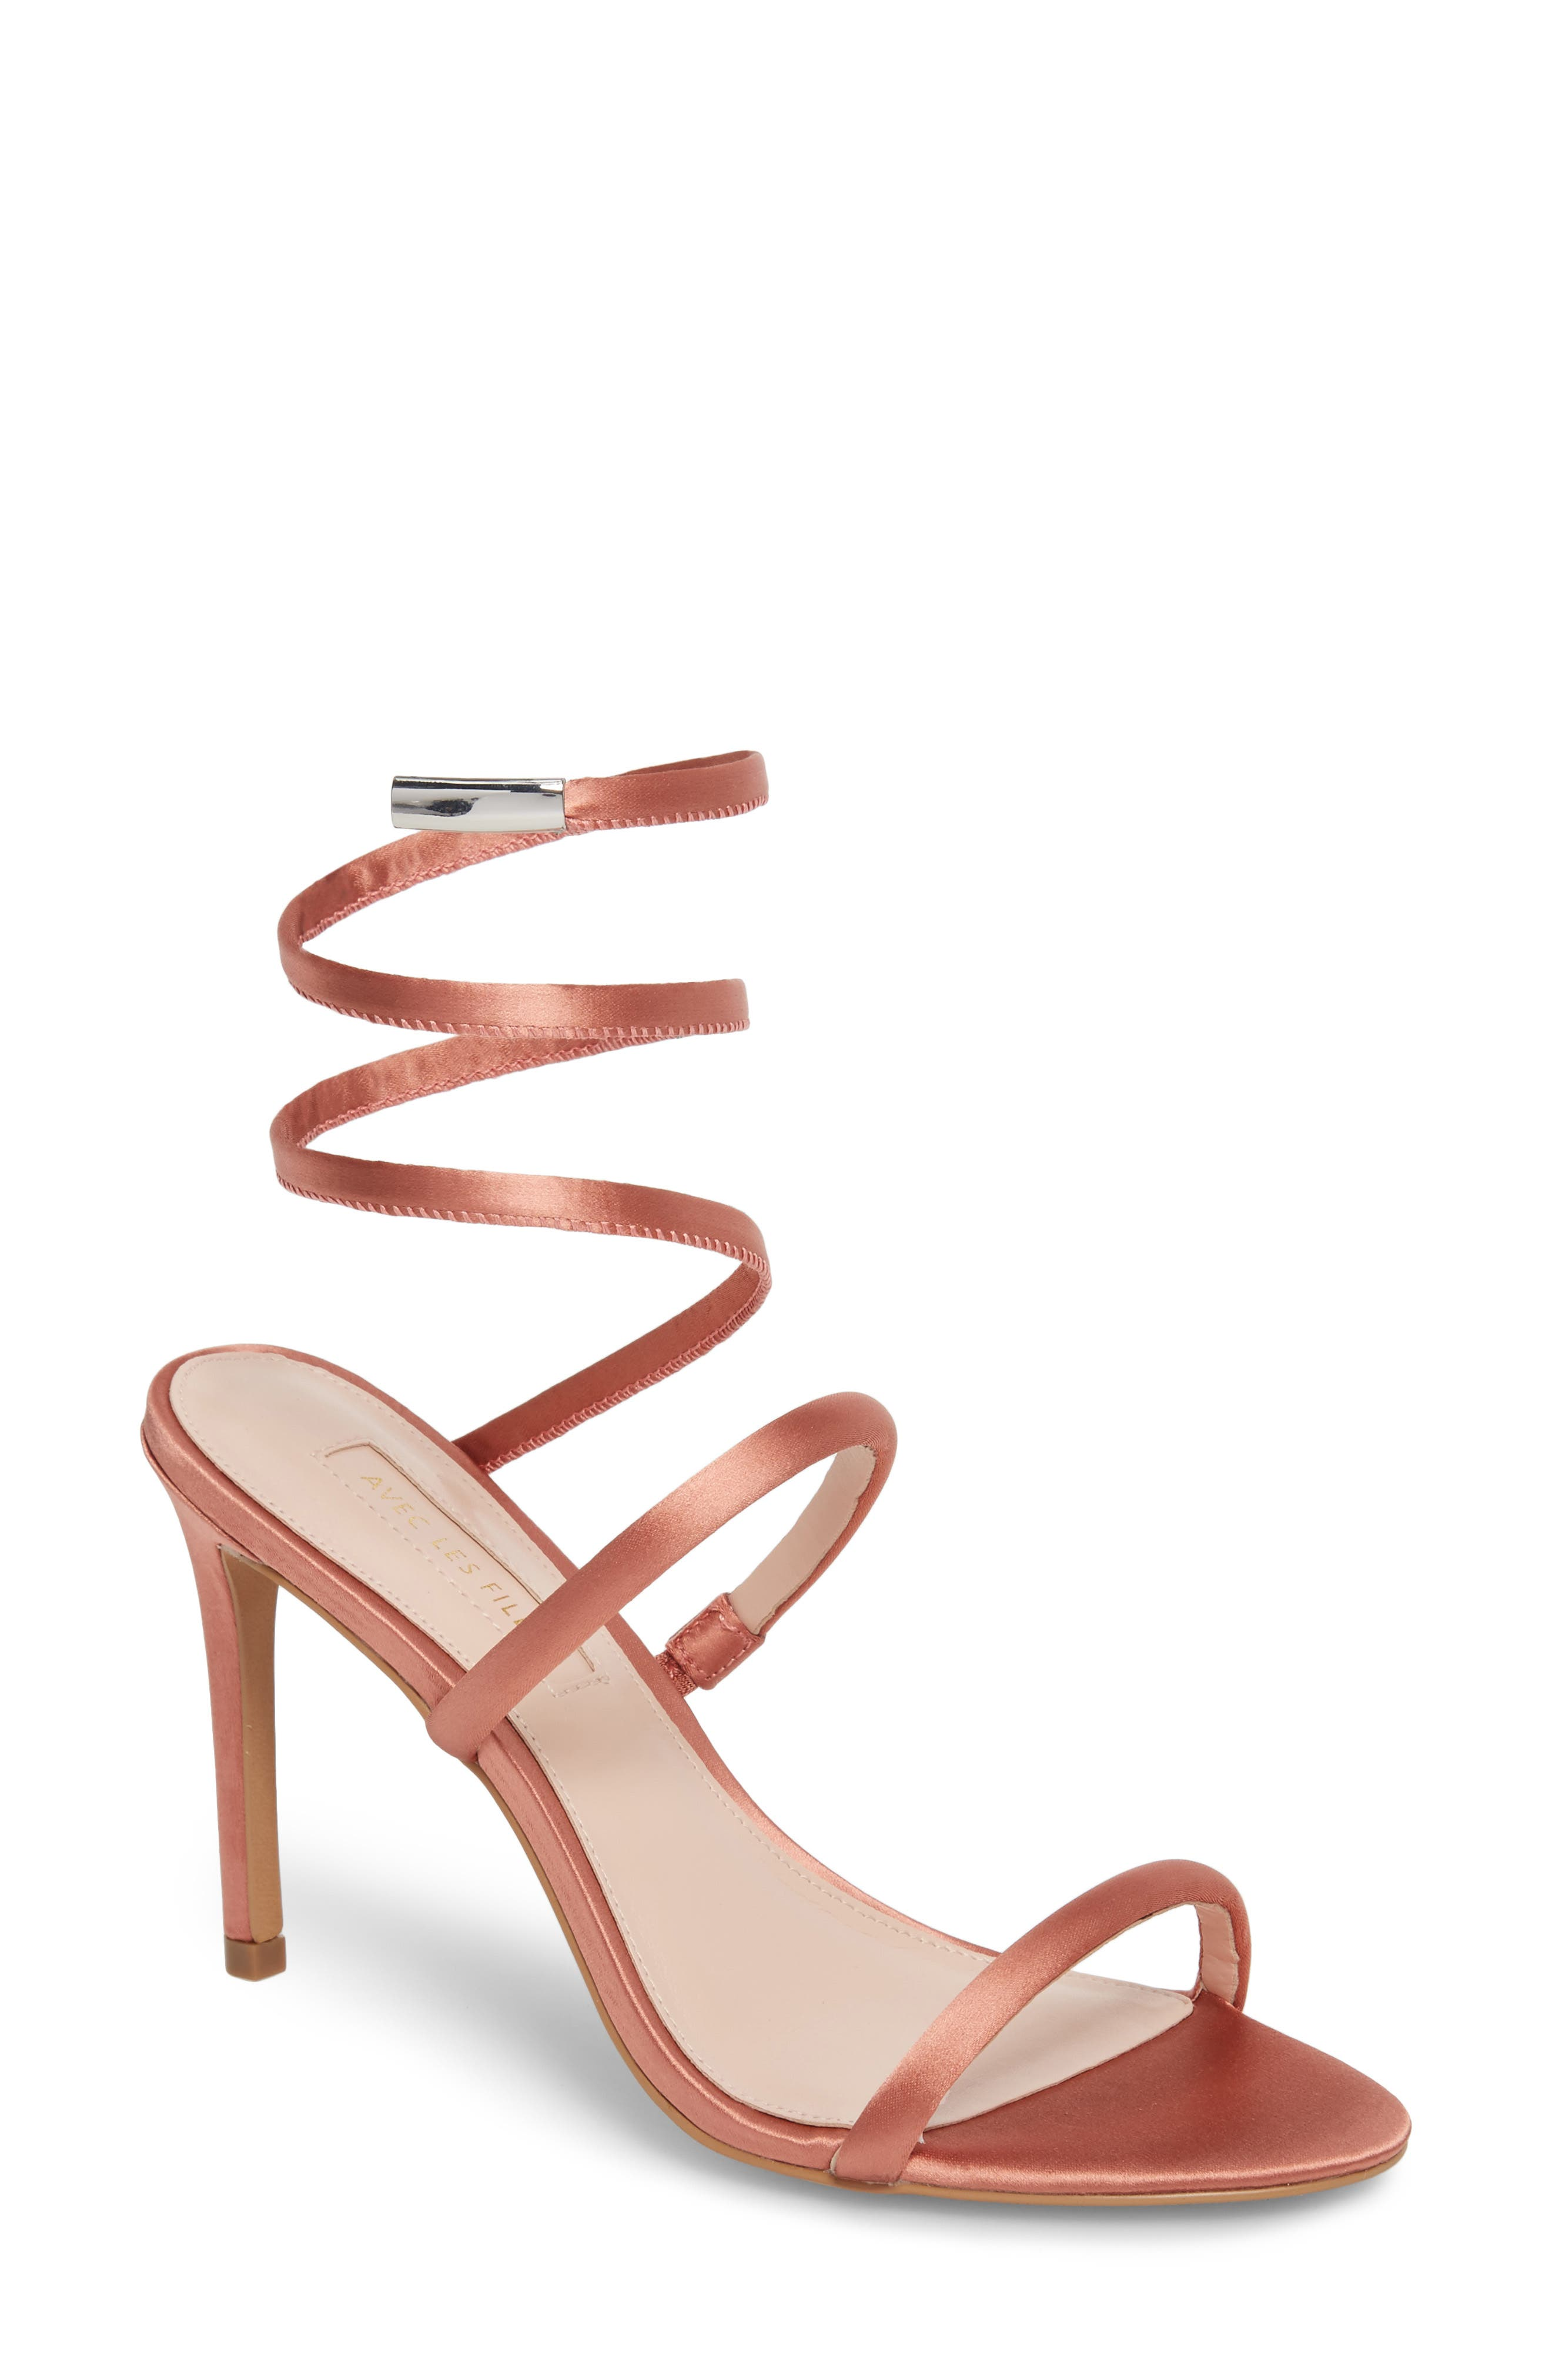 Joia Ankle Wrap Sandal,                         Main,                         color, Dusty Rose Fabric